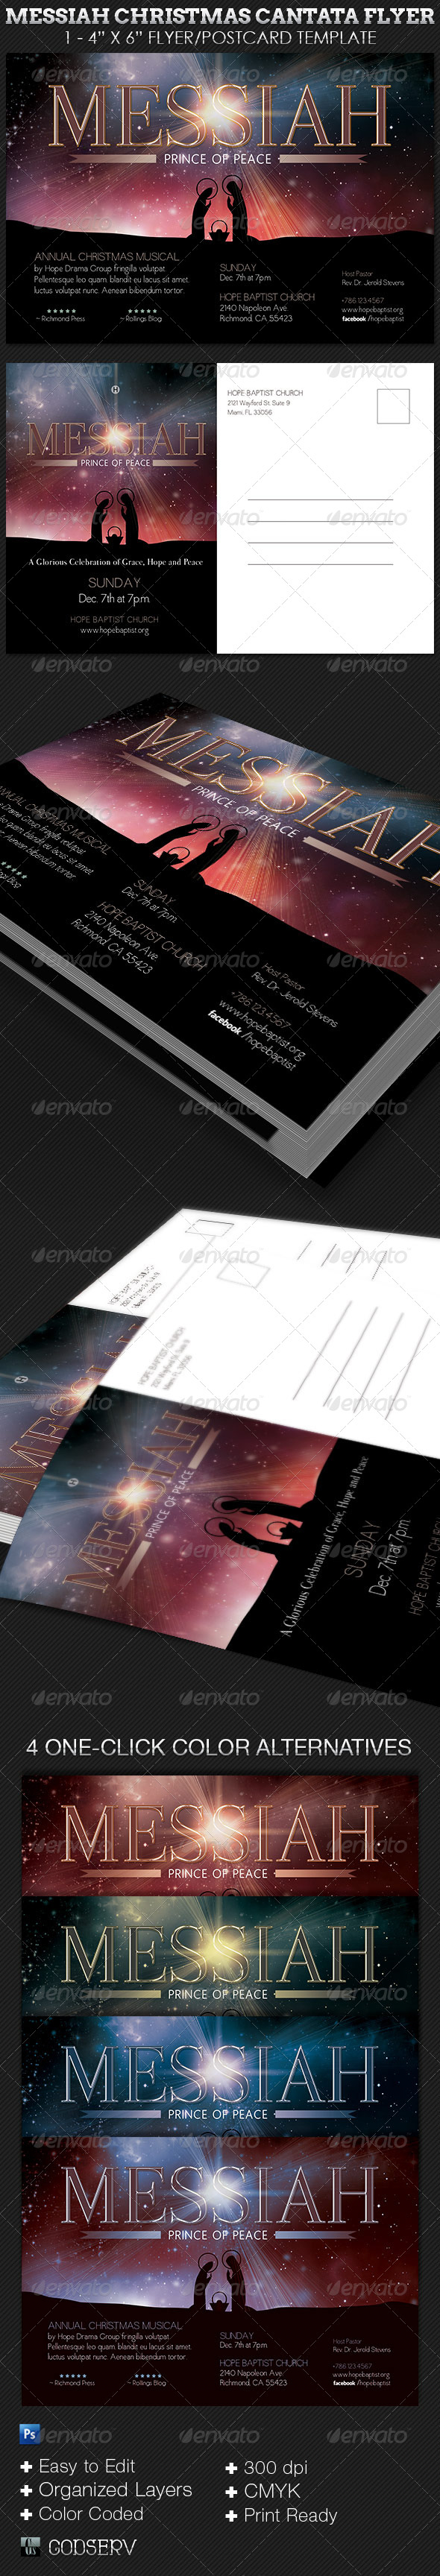 GraphicRiver Messiah Christmas Cantata Flyer Template 6317537